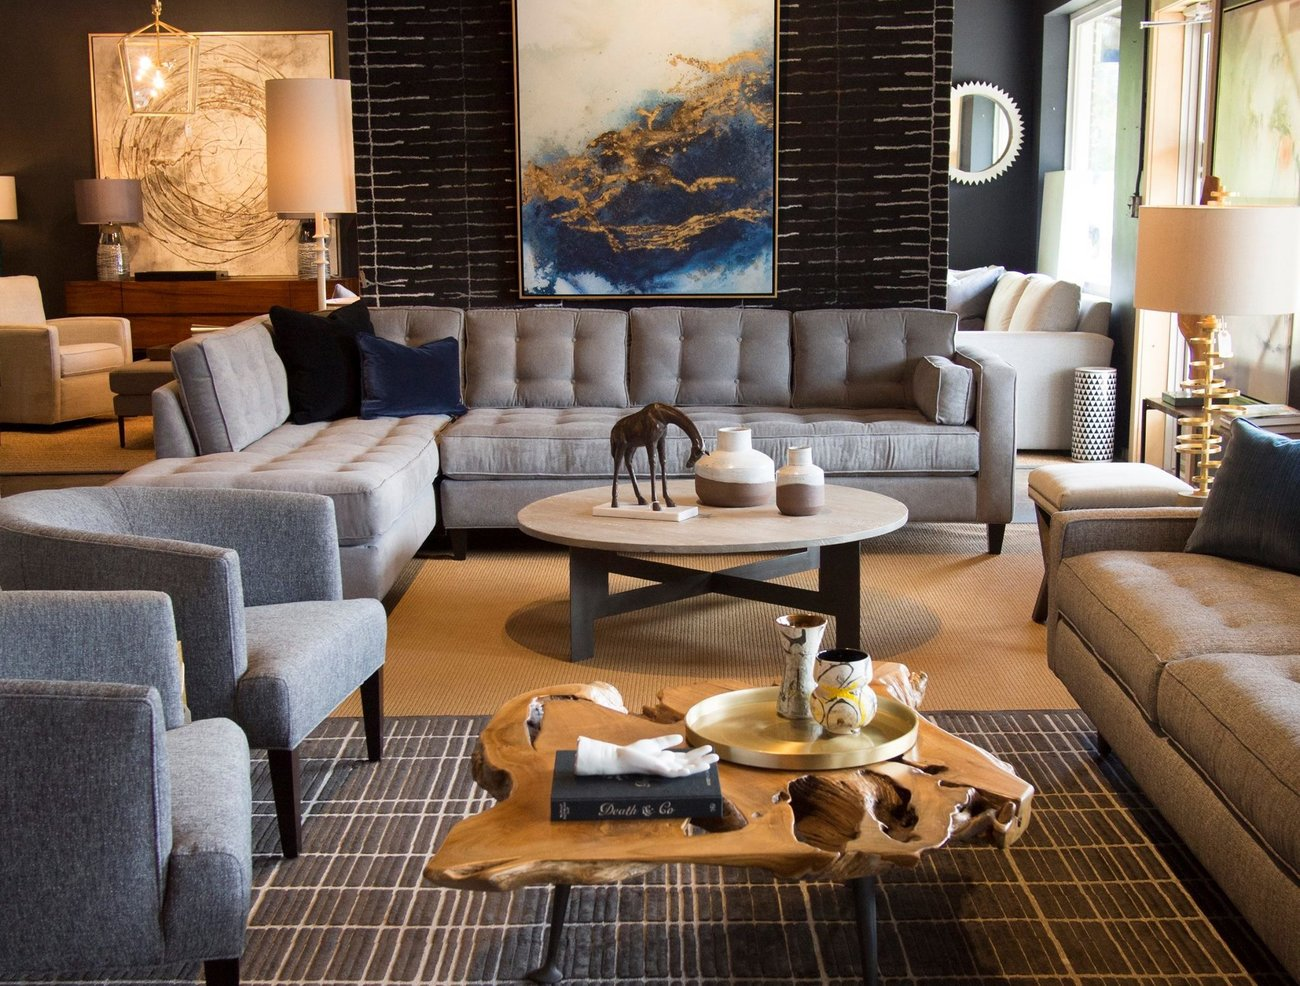 12 best furniture stores in Charlotte - Charlotte Agenda